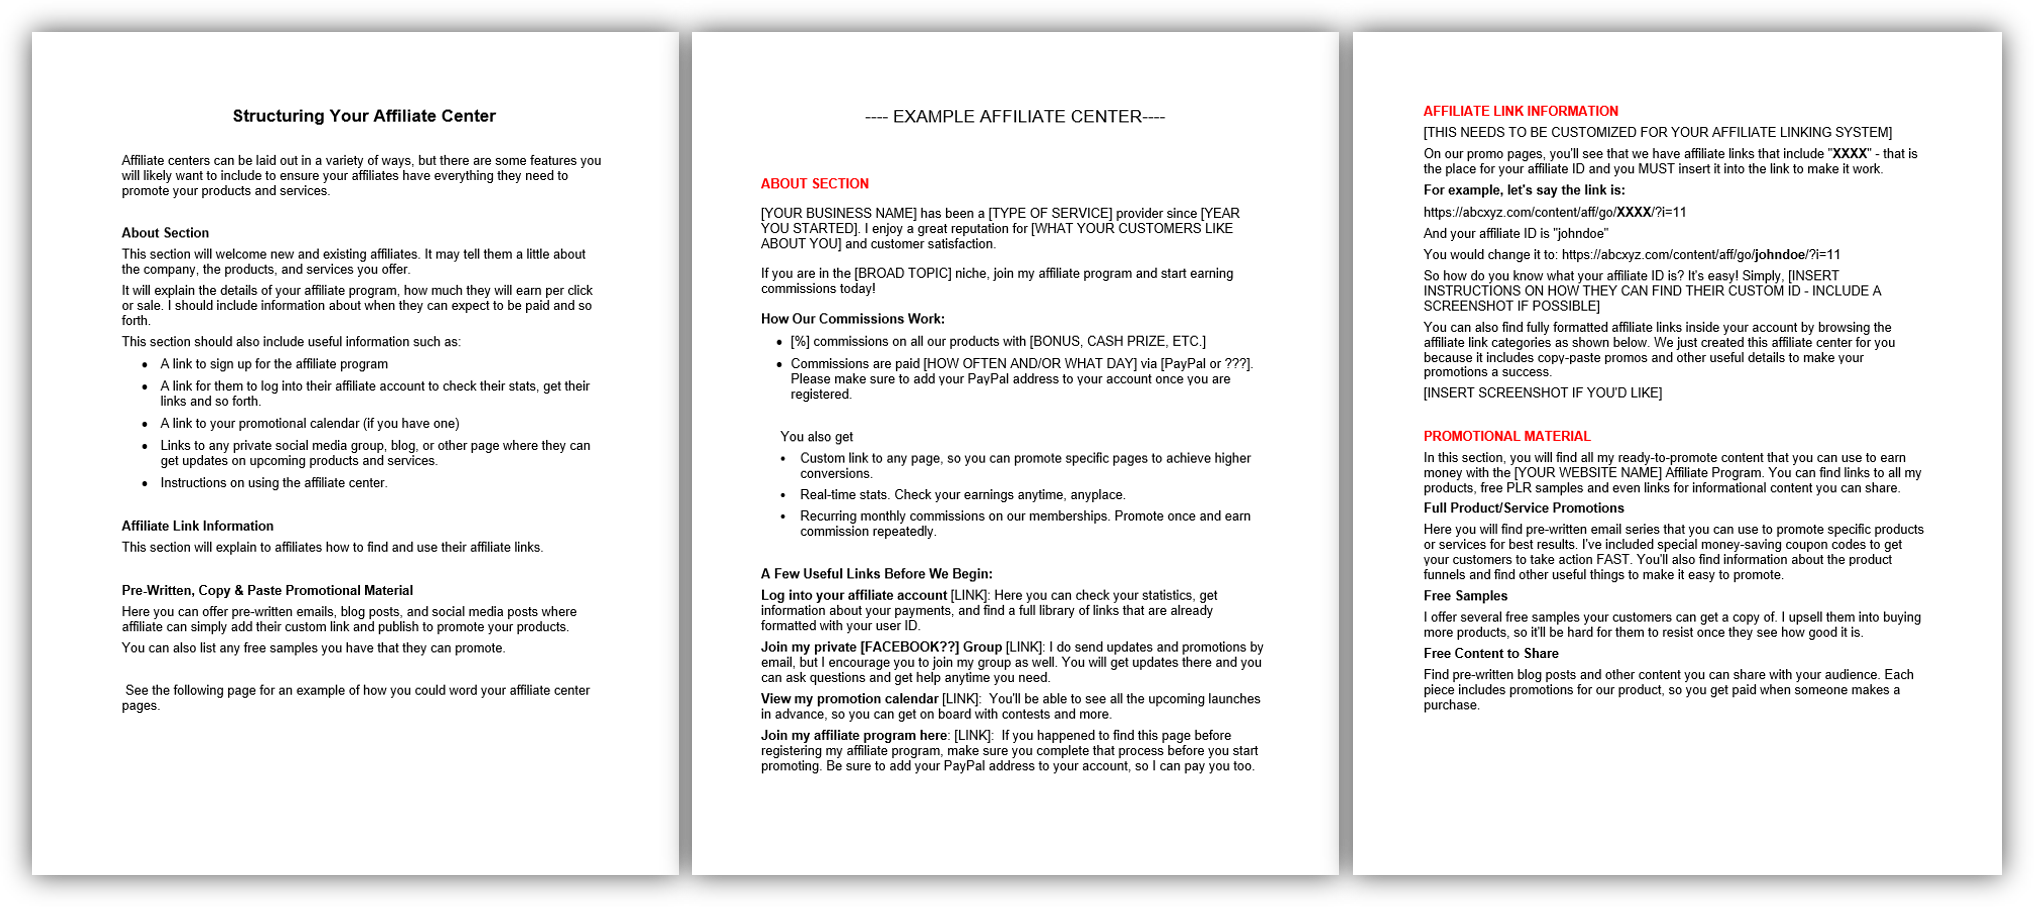 Structuring Your Affiliate Center Worksheet image